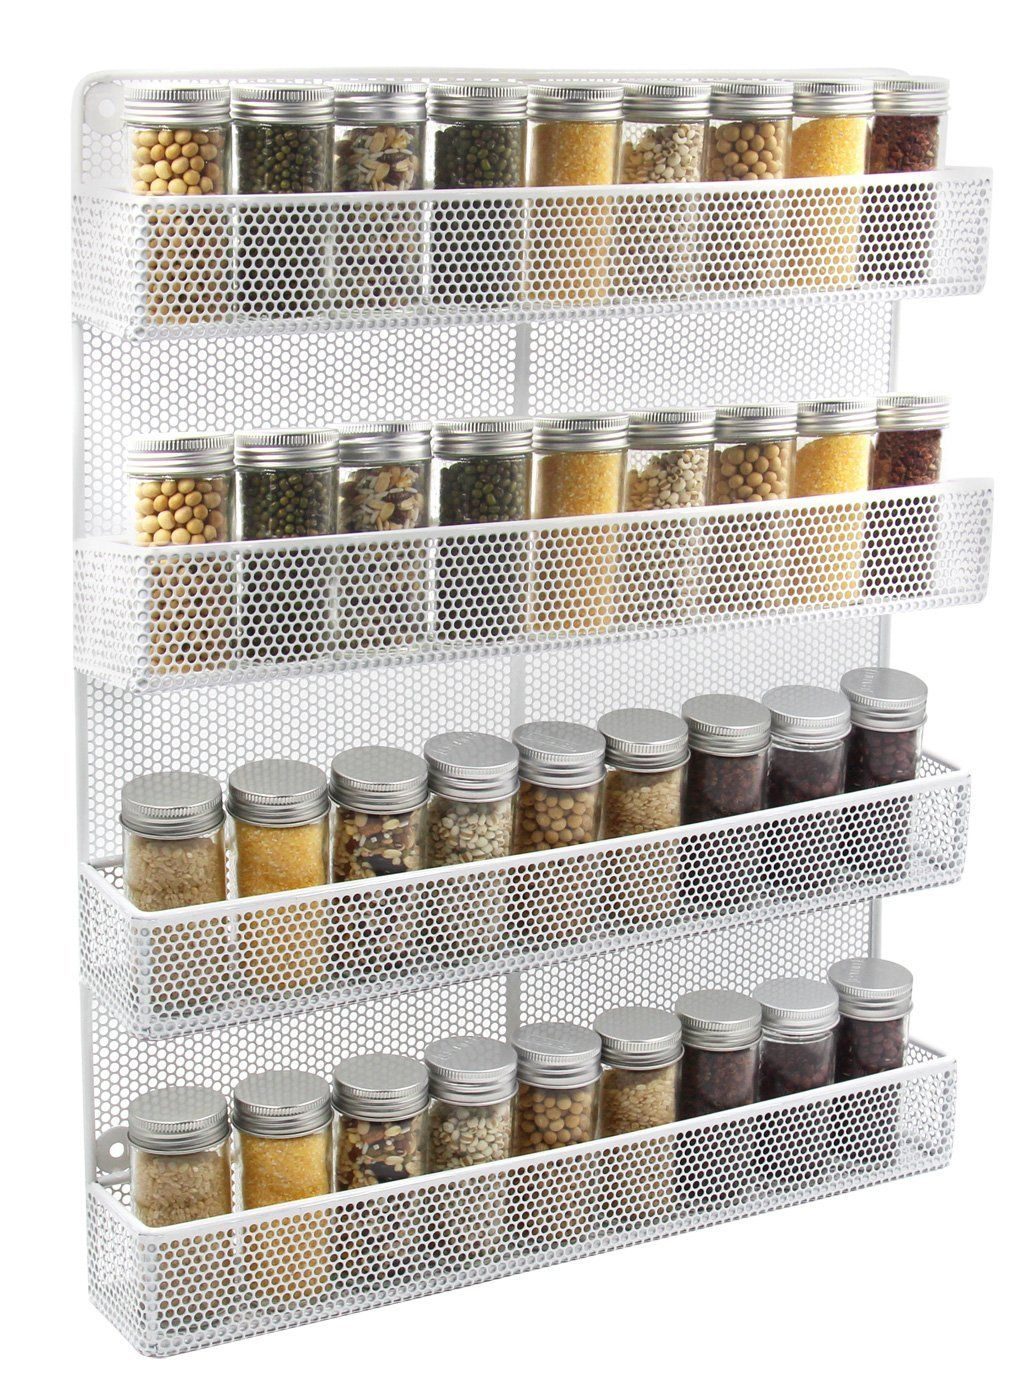 Standvitrinen Amazon Amazon Esylife 4 Tier Wall Mount Spice Rack Organizer Large